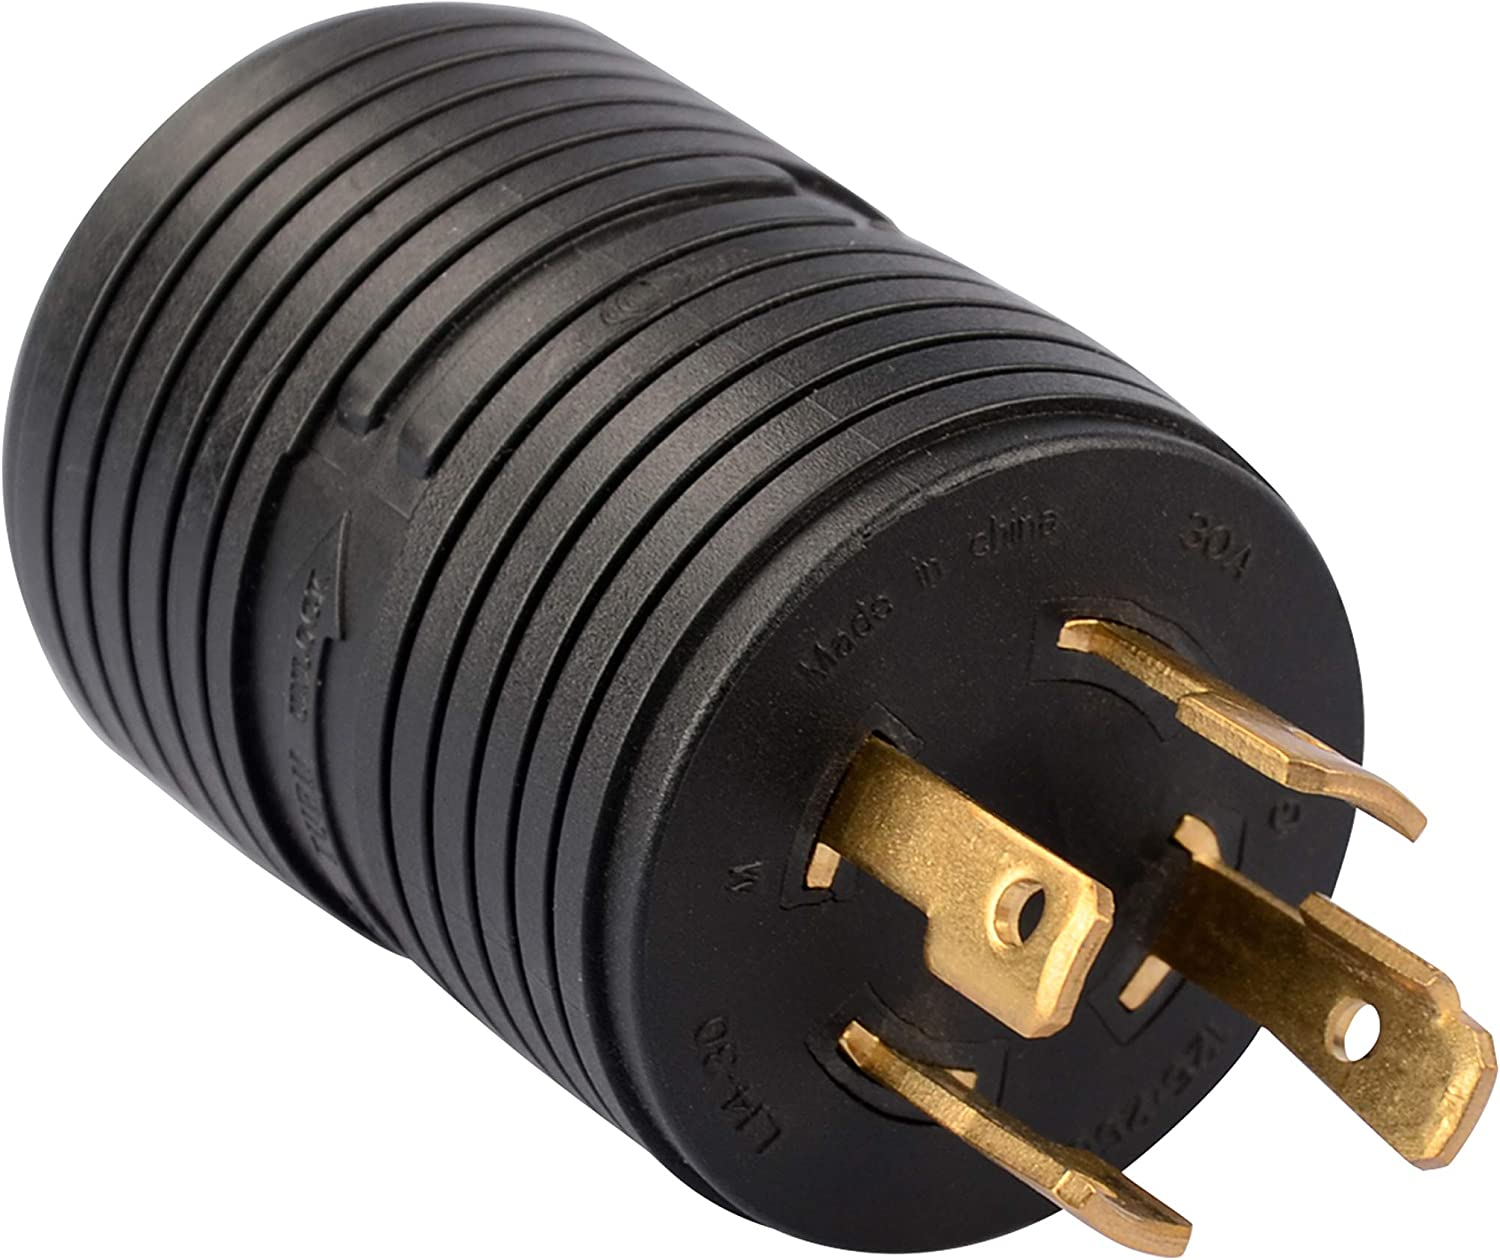 RVGUARD Generator OFFicial mail order Adapter Japan Maker New Plug 4 L14-30P to Prong NEMA 3